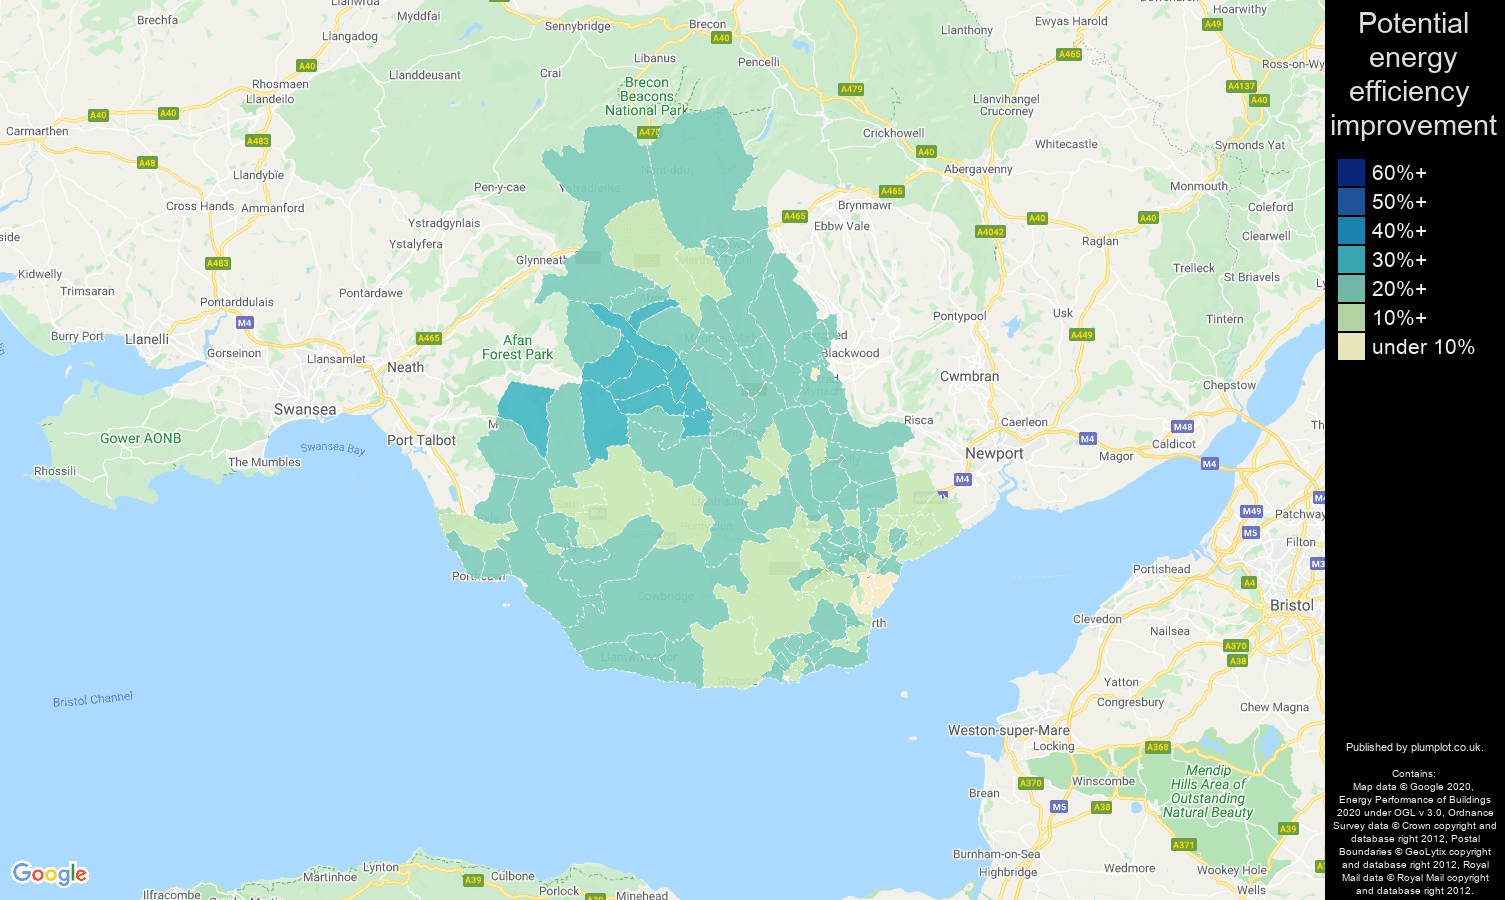 Cardiff map of potential energy efficiency improvement of properties